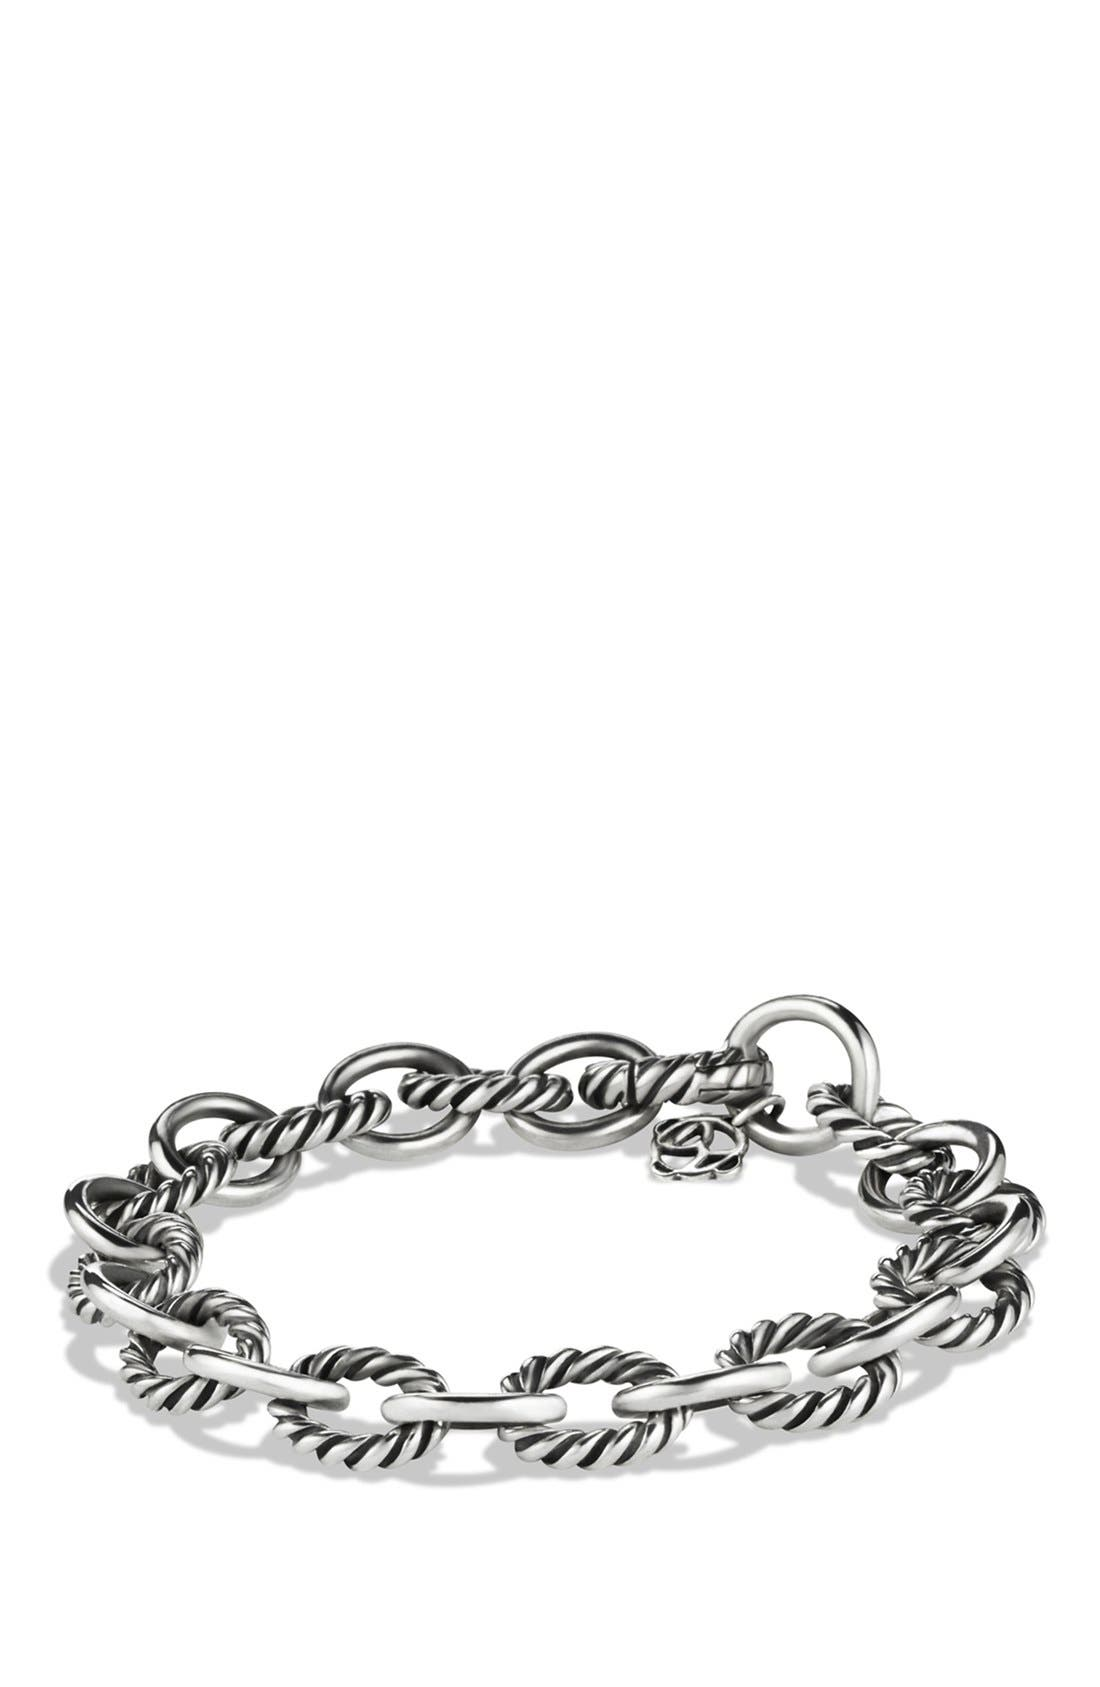 Main Image - David Yurman 'Oval' Link Bracelet